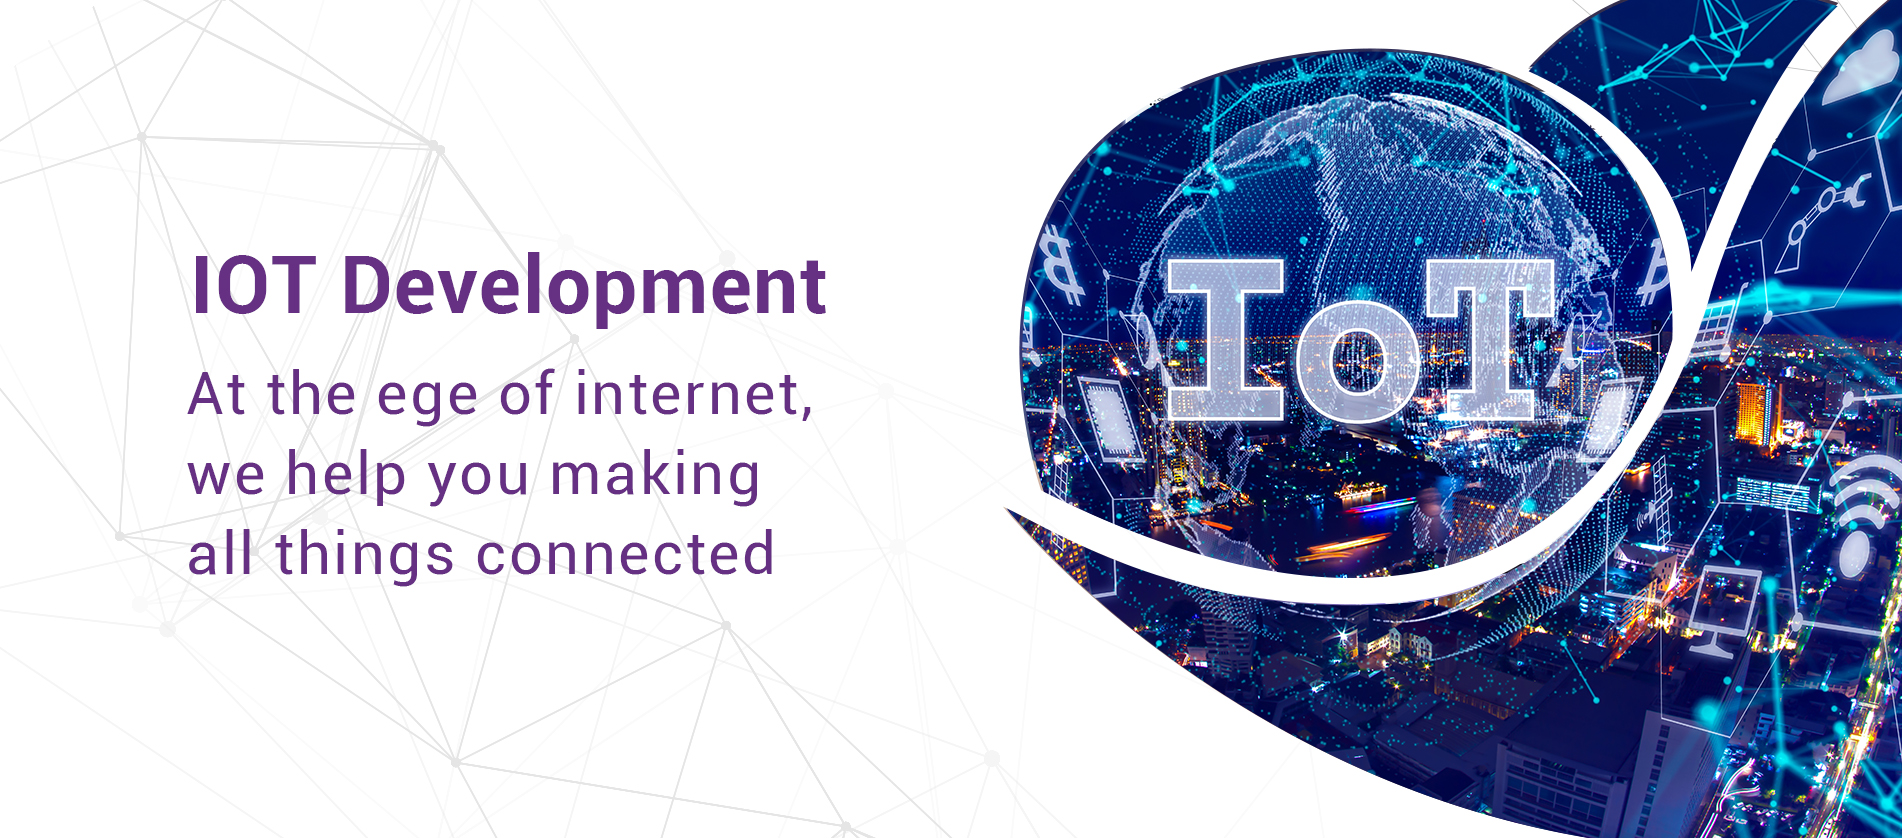 iot-development-service-new